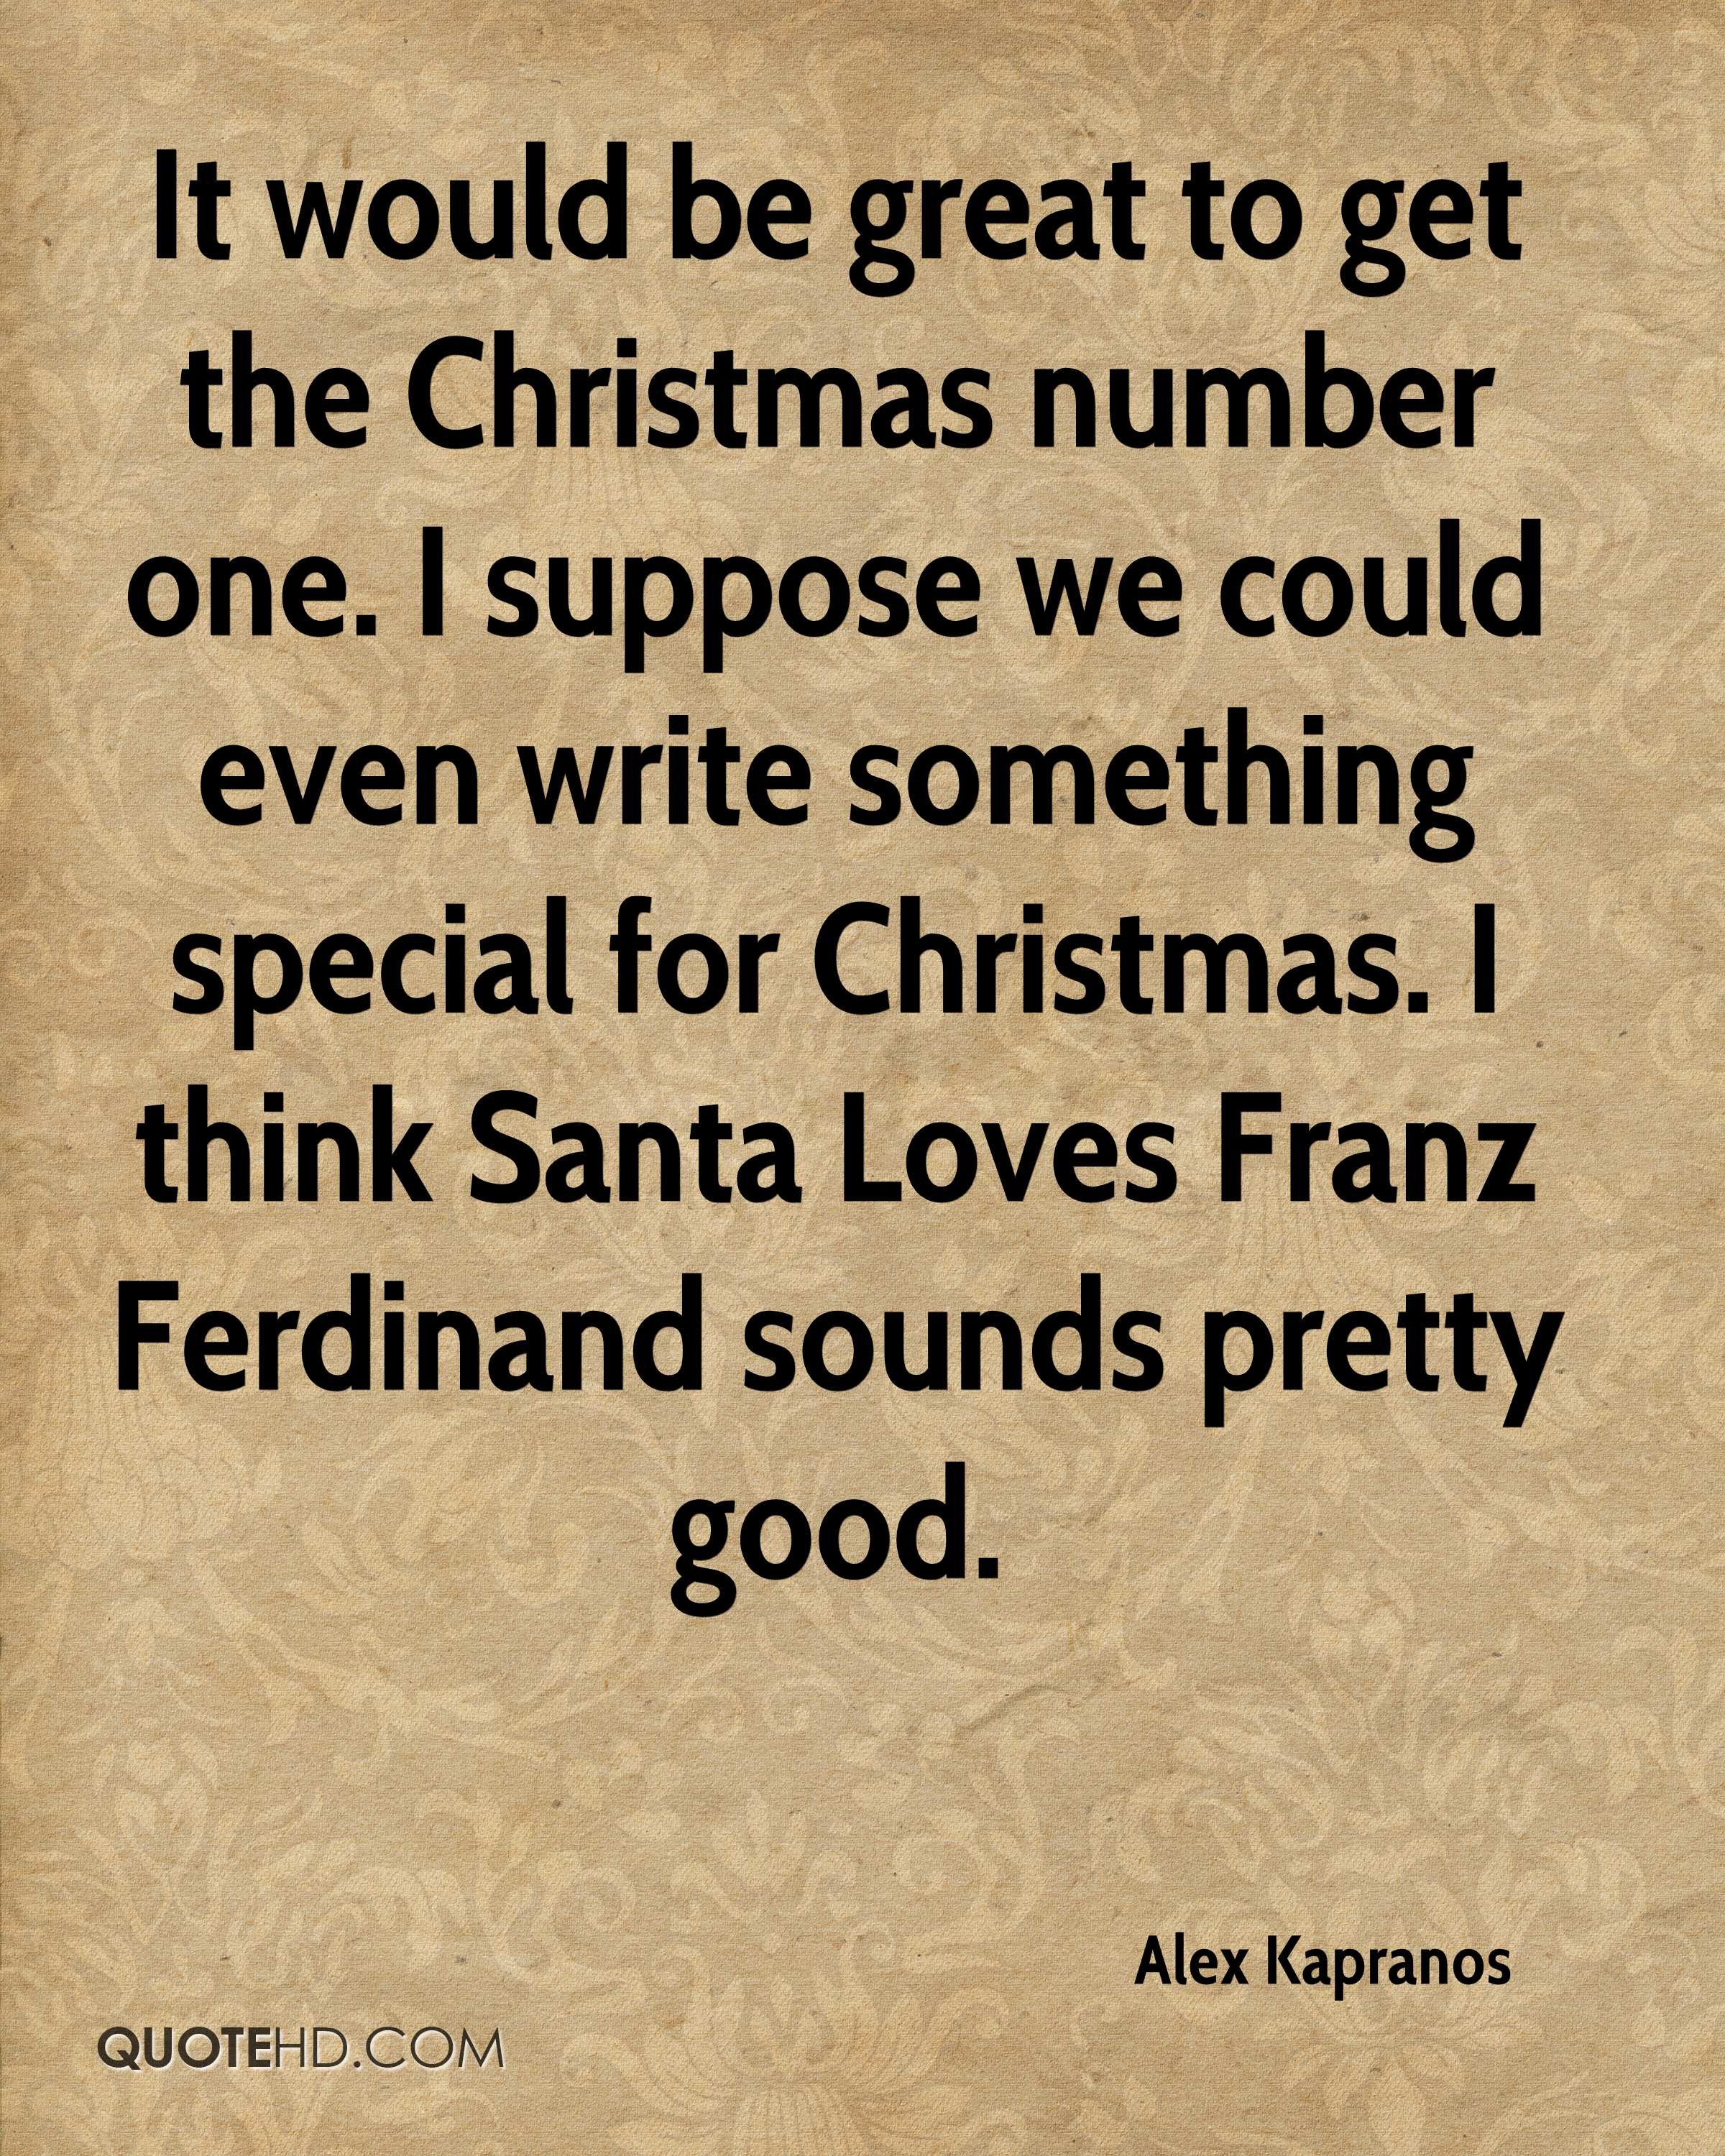 It would be great to get the Christmas number one. I suppose we could even write something special for Christmas. I think Santa Loves Franz Ferdinand sounds pretty good.